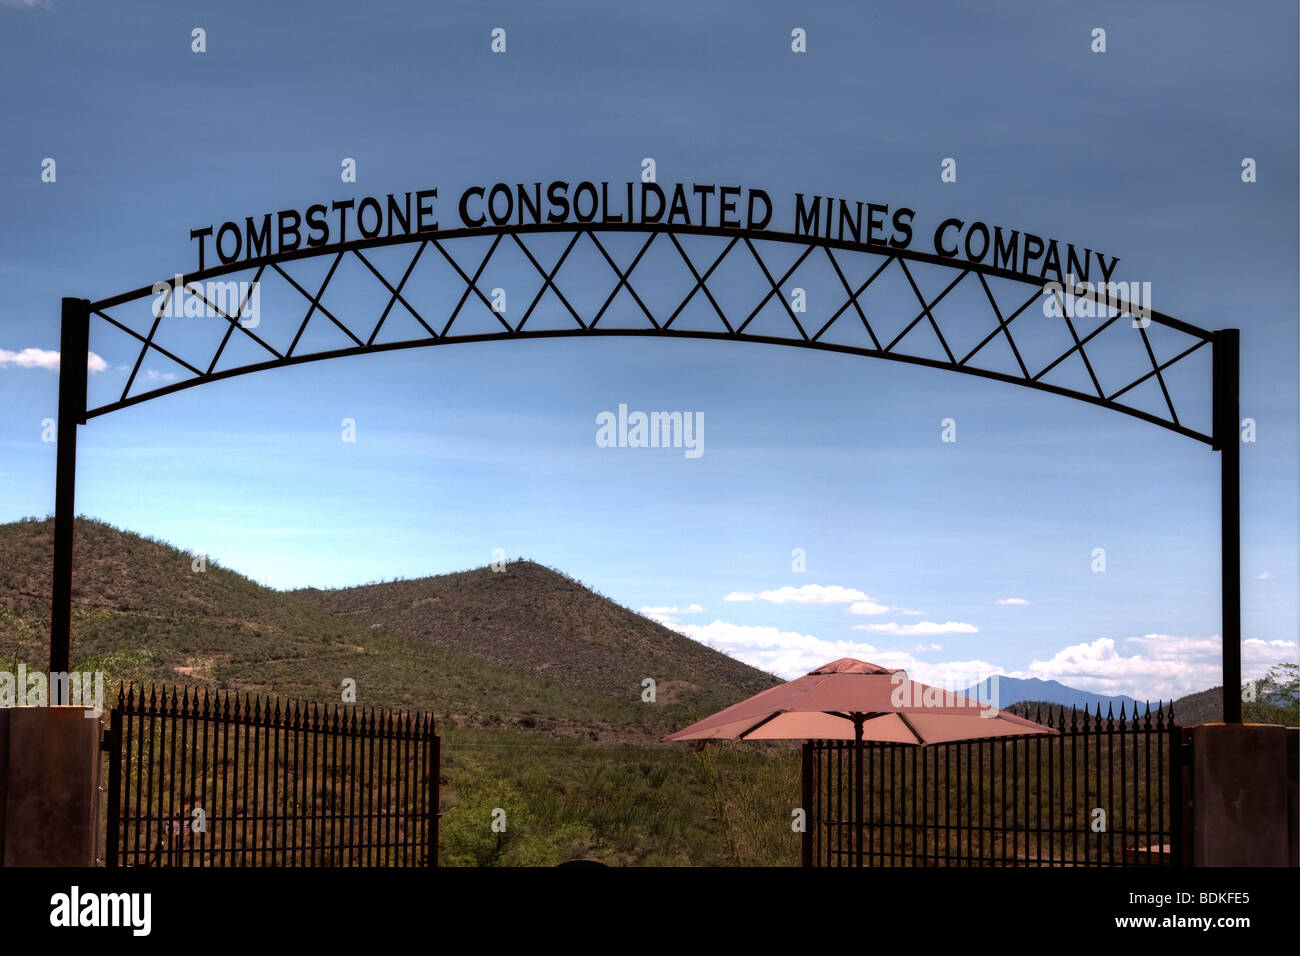 Tombstone Consolidated Mines Company in Tombstone Arizona - Stock Image